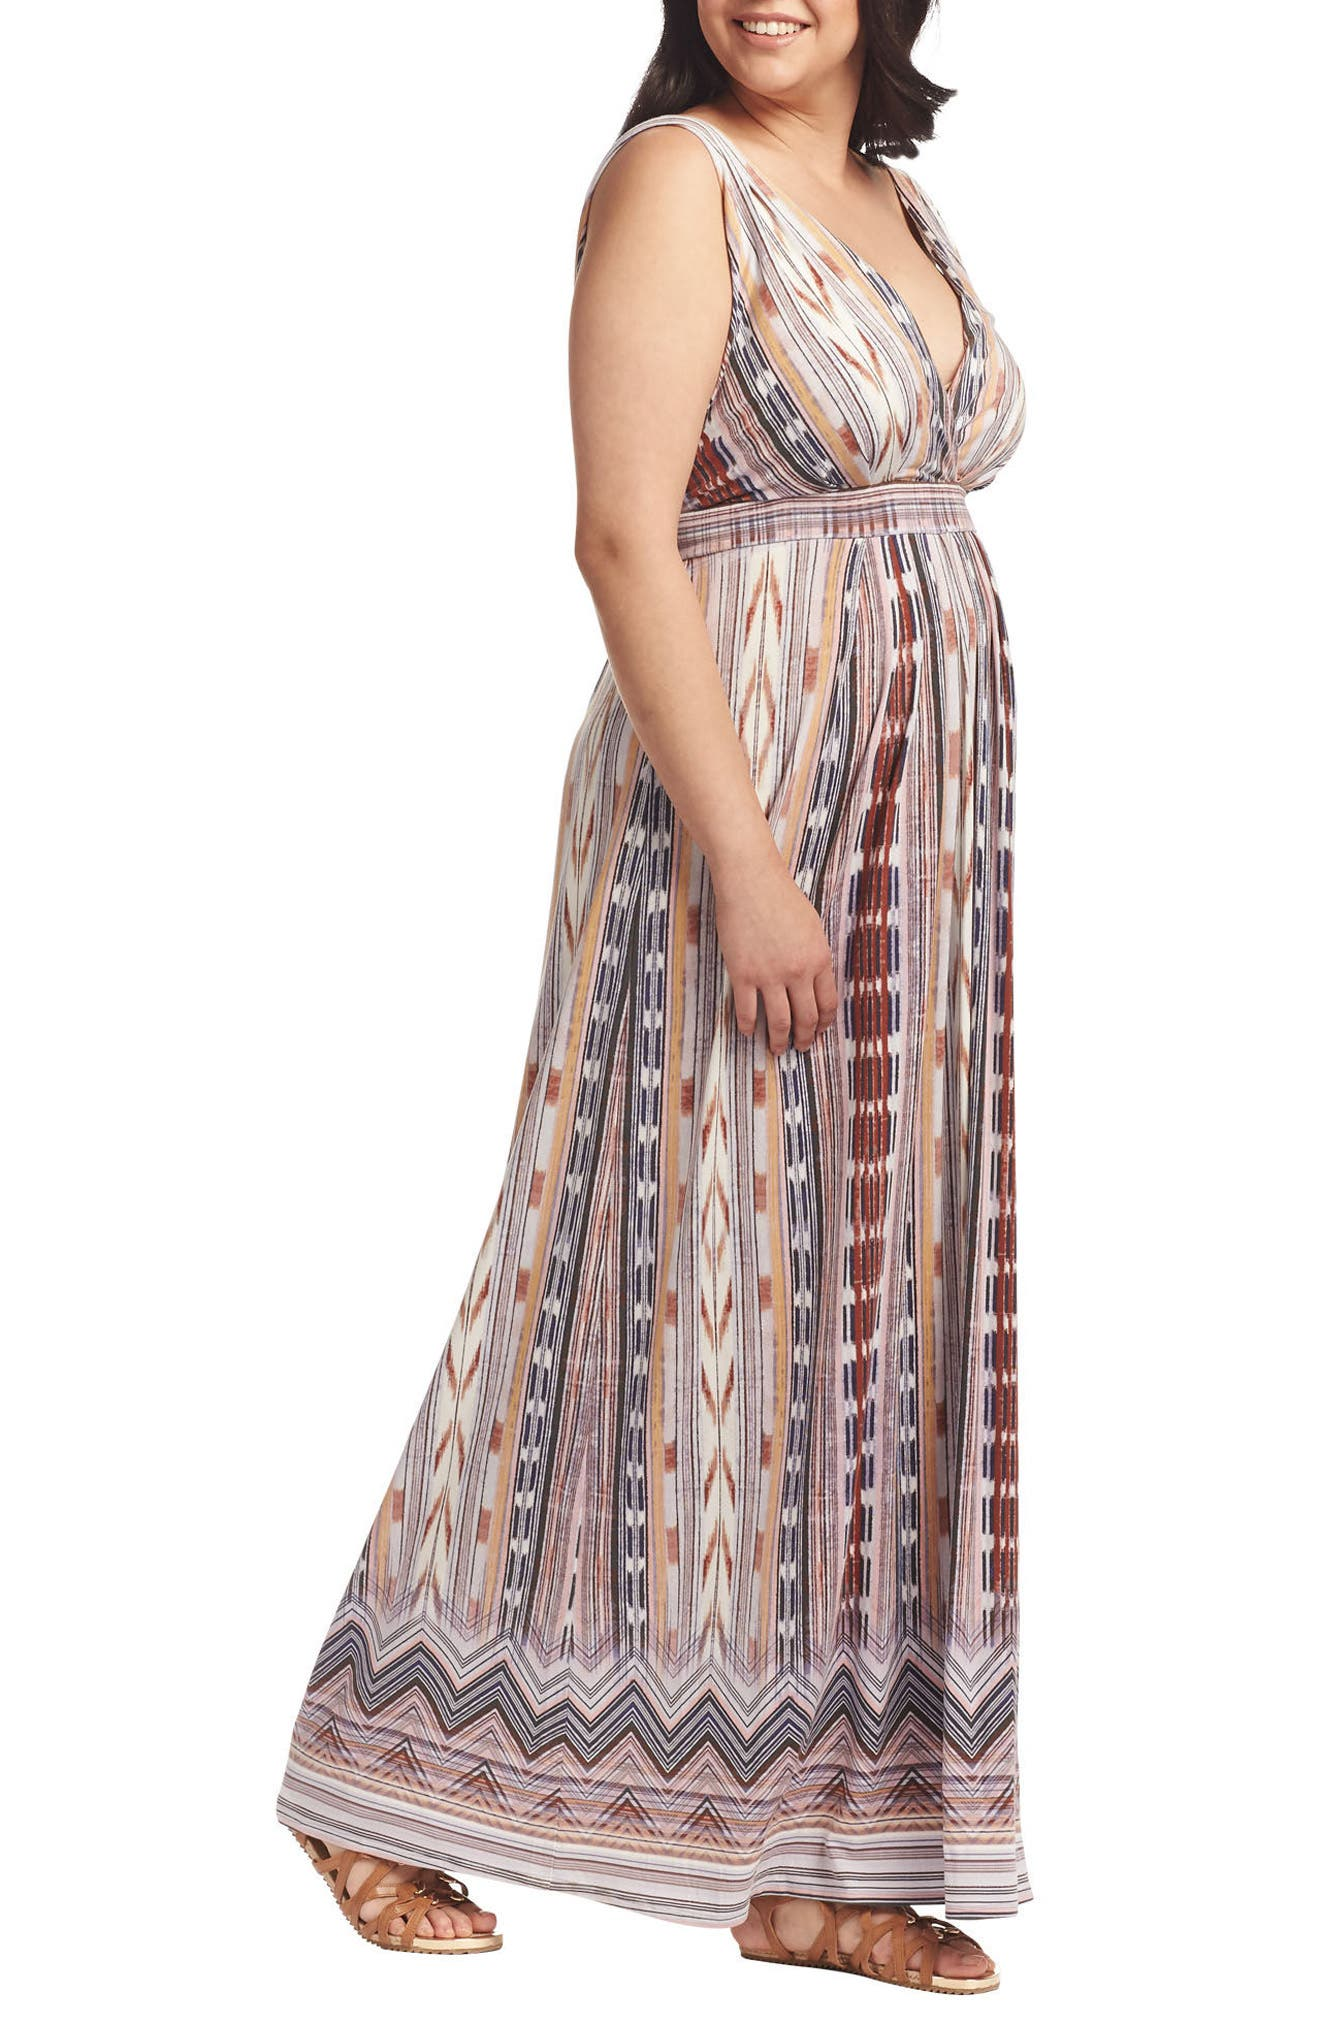 Chloe Empire Waist Maxi Dress,                             Alternate thumbnail 57, color,